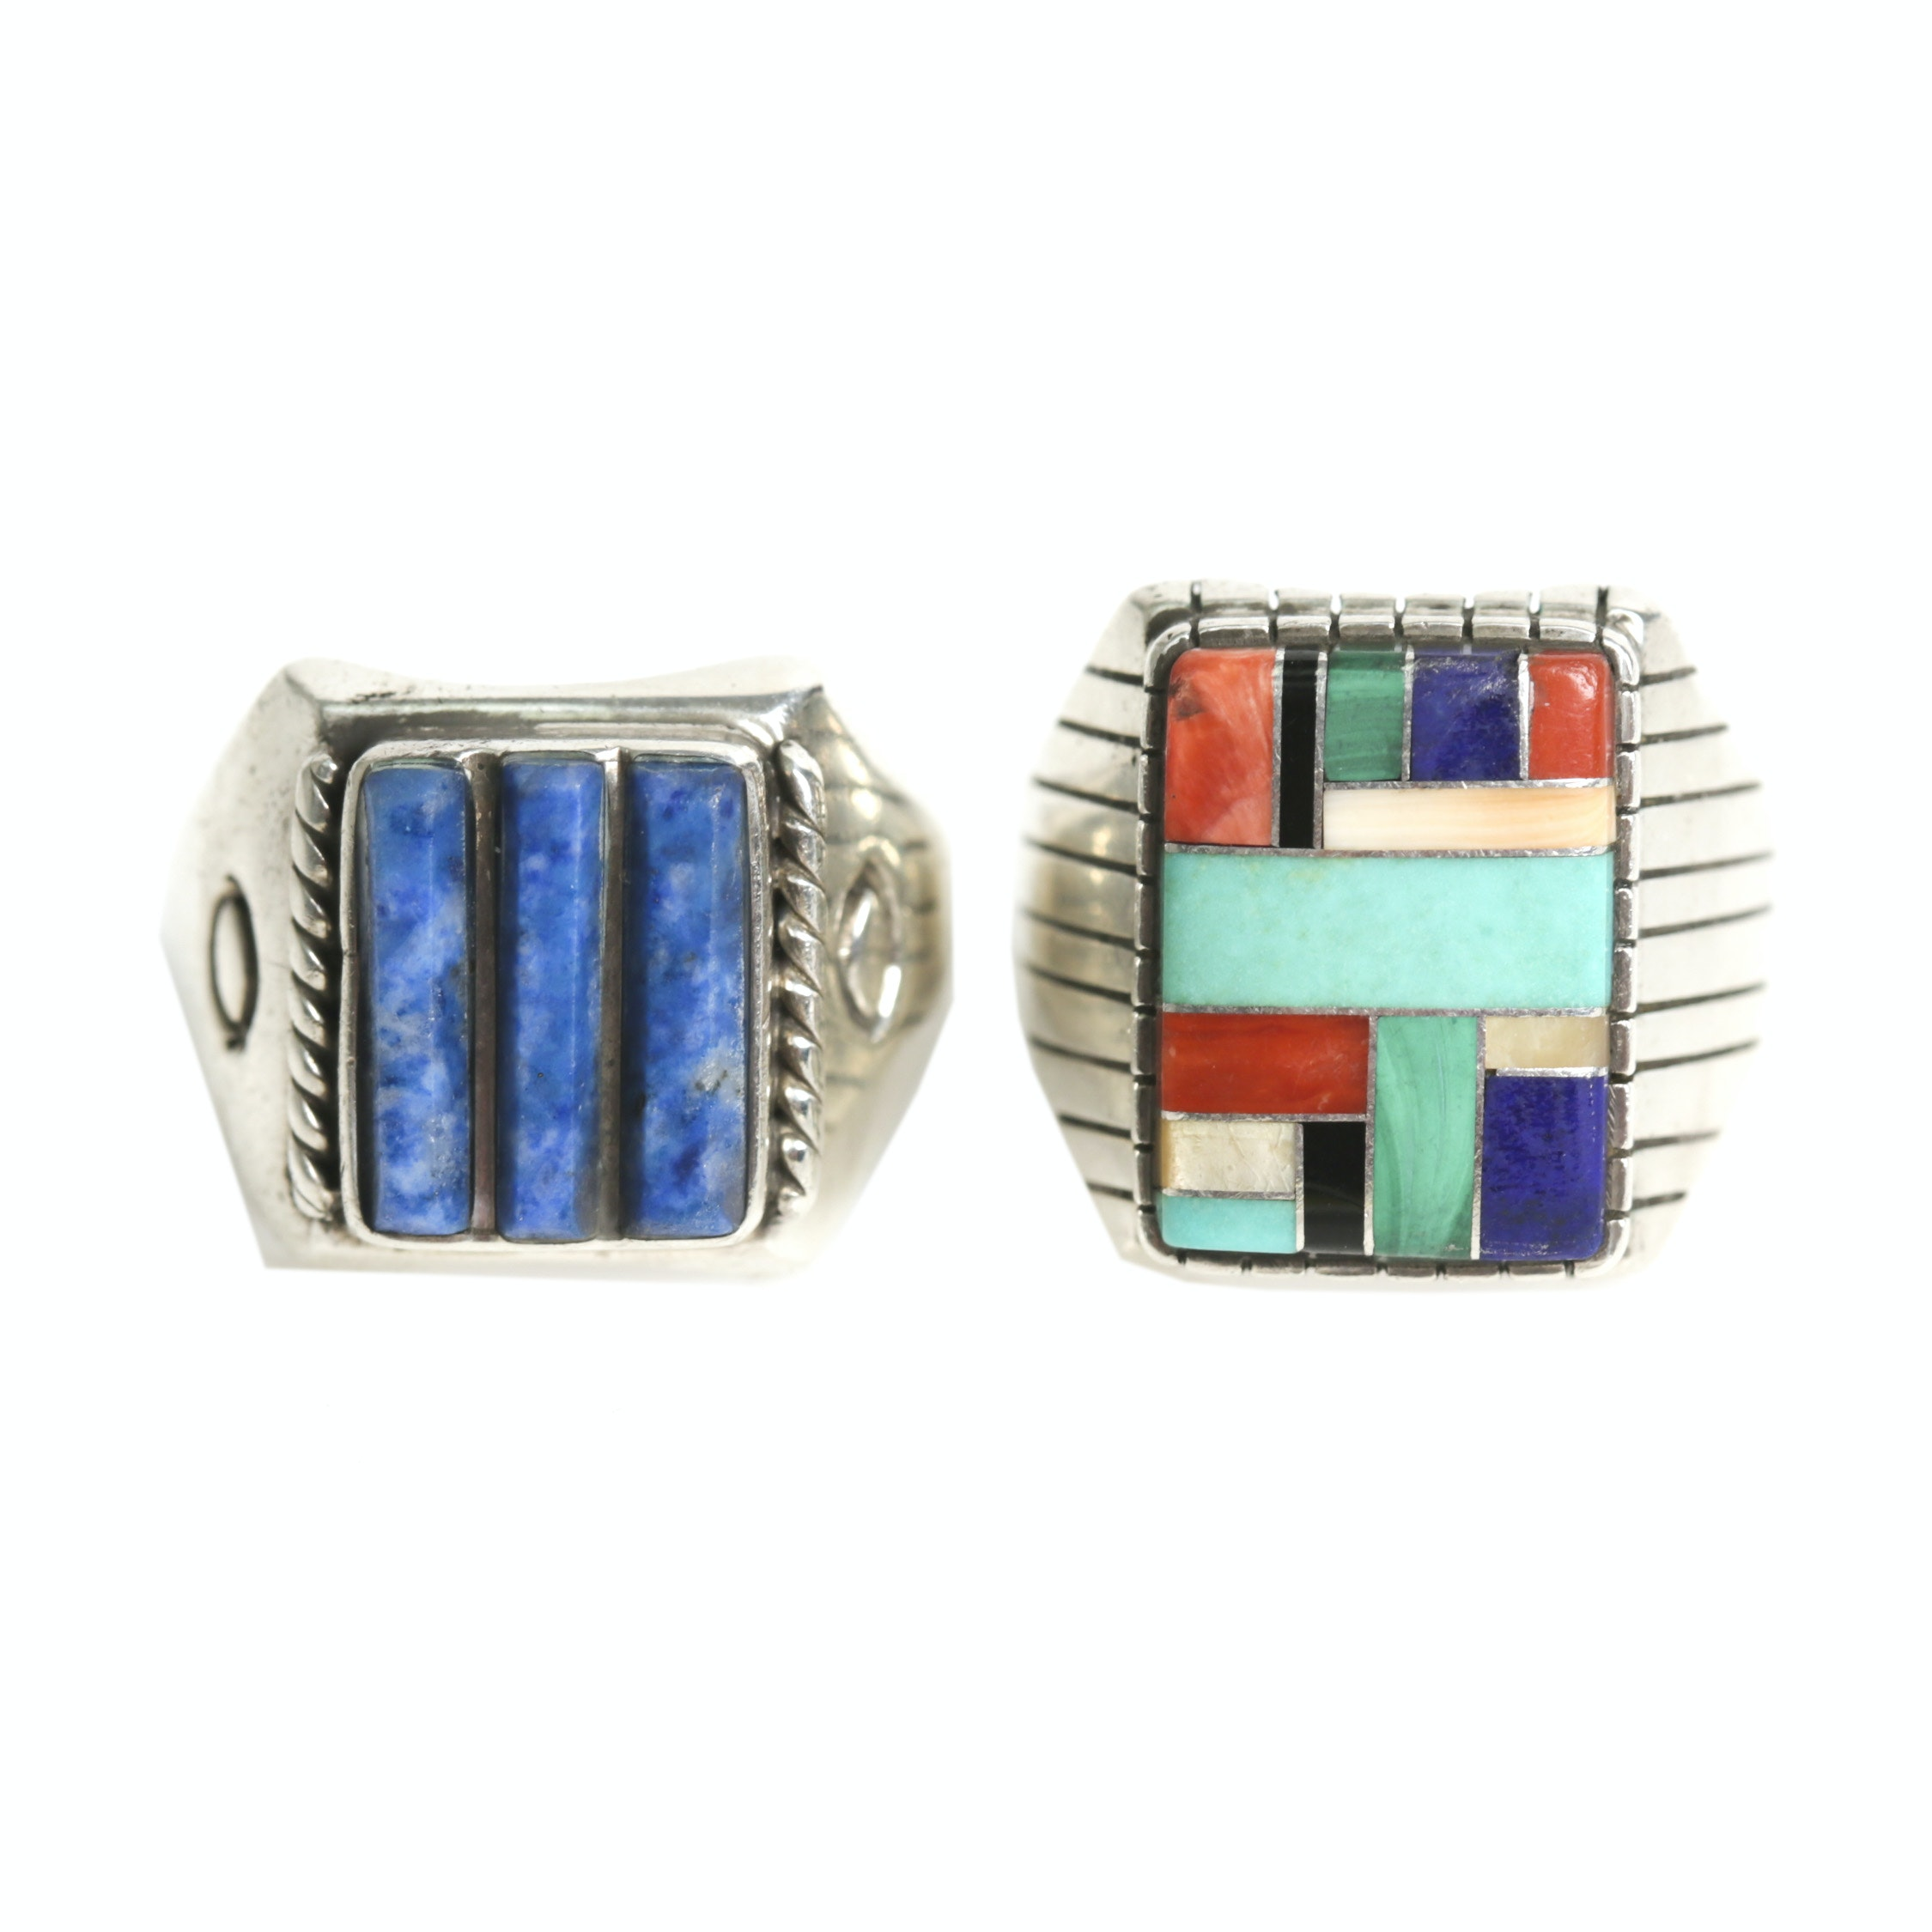 Sterling Silver Multi-Stone Ring and 900 Silver Lapis Lazuli Ring